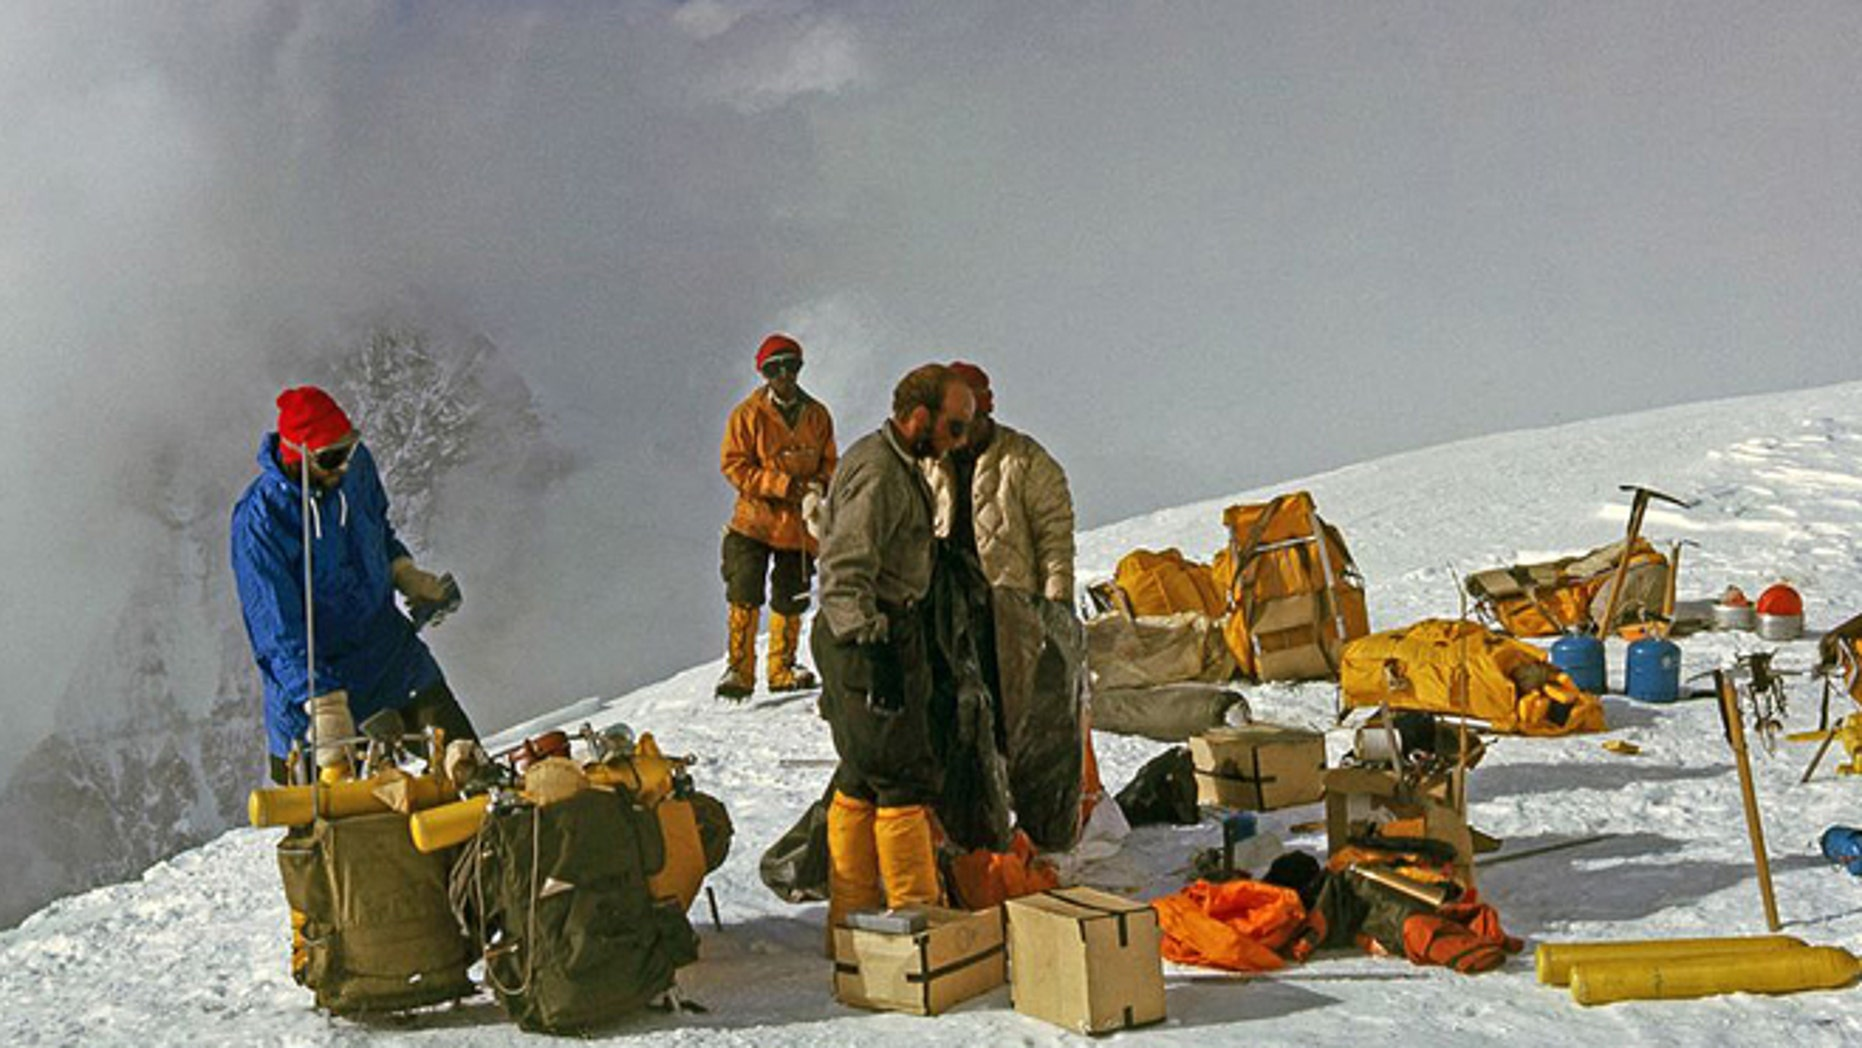 In this 1963 photo released by Henry S. Hall, Jr. American Alpine Club Library, Barry Corbet Personal Papers and Films, members of the 1963 American Mount Everest Expedition team and sherpas are shown with their climbing gear on Mt. Everest.